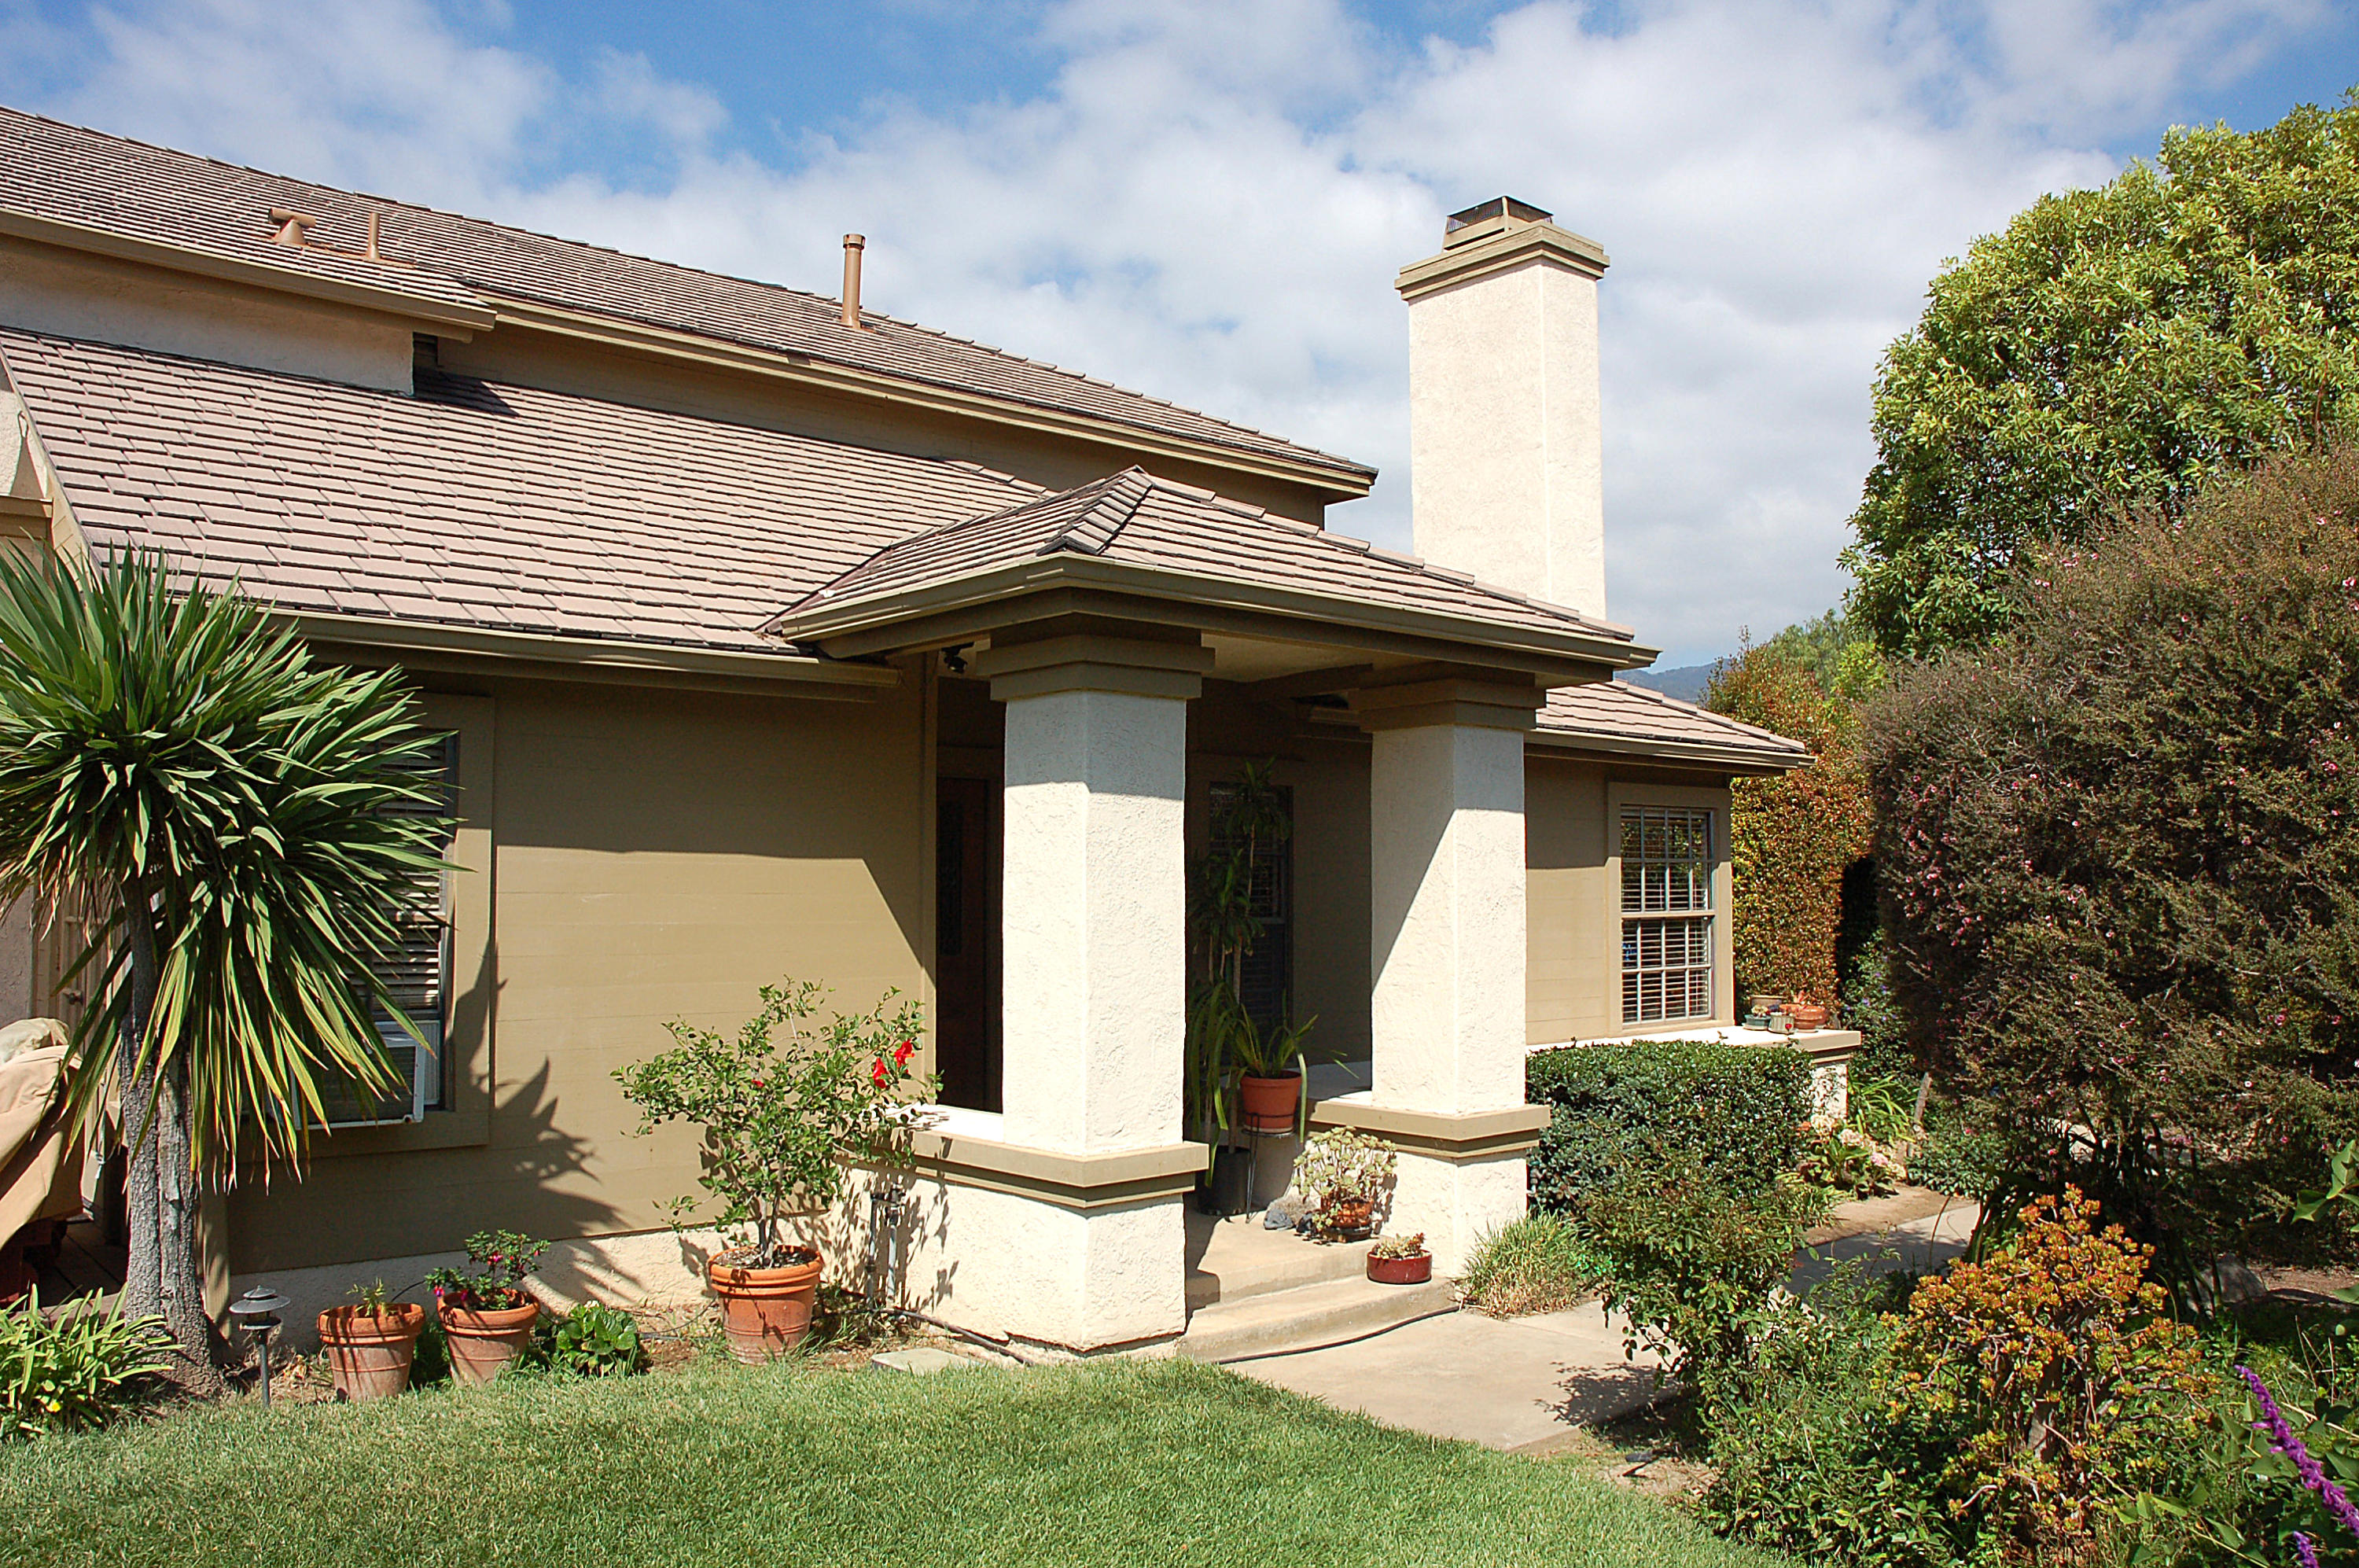 Property photo for 743 Dos Hermanos Rd Santa Barbara, California 93111 - 18-3807